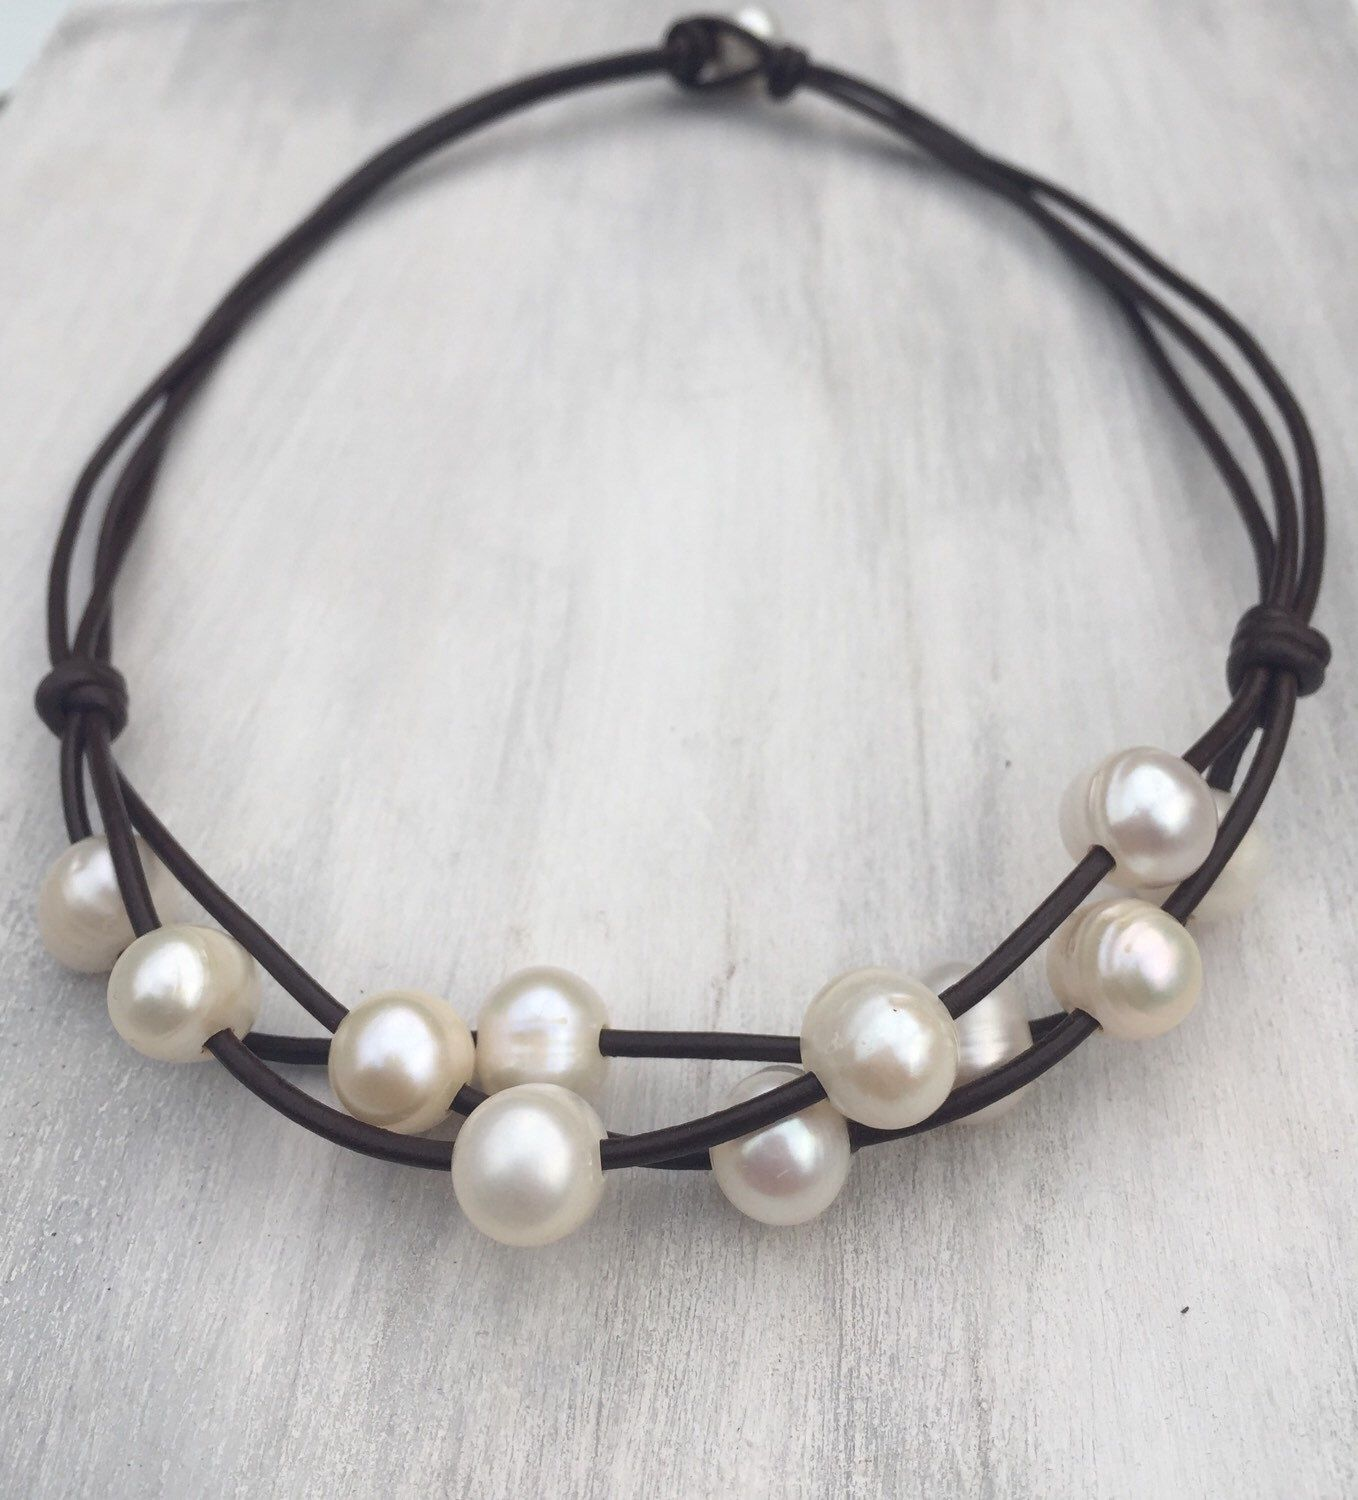 Freshwater Pearl Necklace, Leather And Pearls, Pearls On Leather, Pearl  Jewelry A Personal